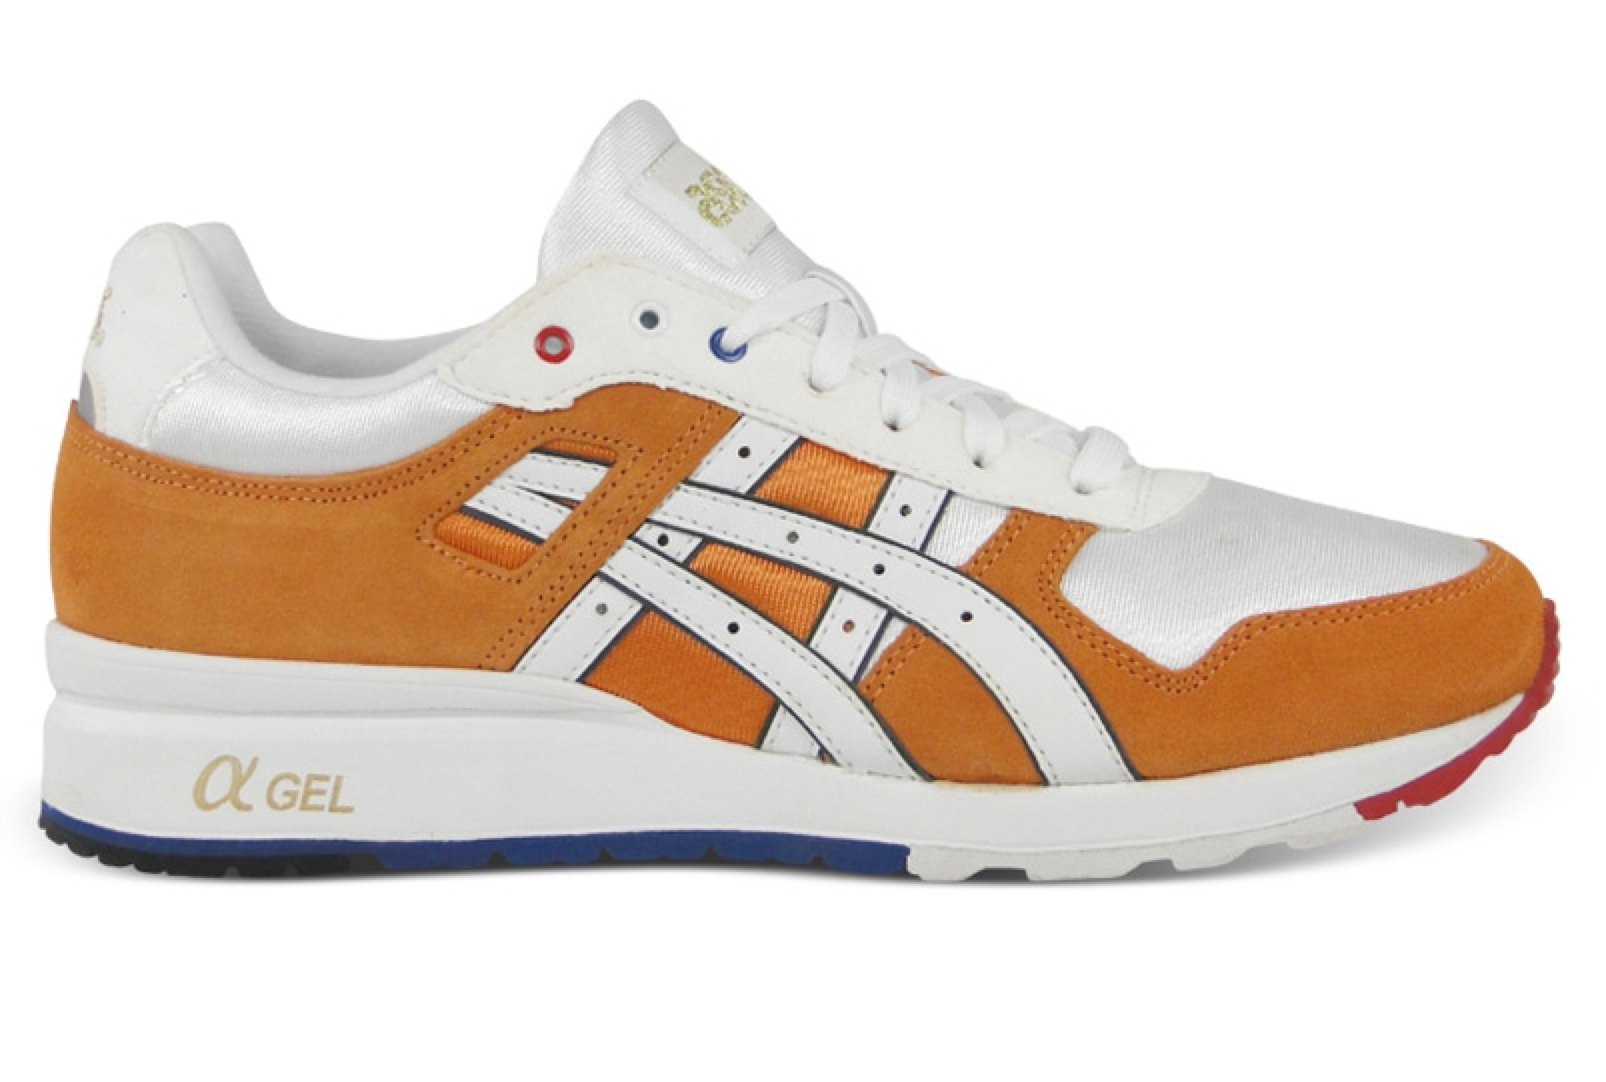 Netherlands Olympic Team x ASICS GT-II at The Good Will Out